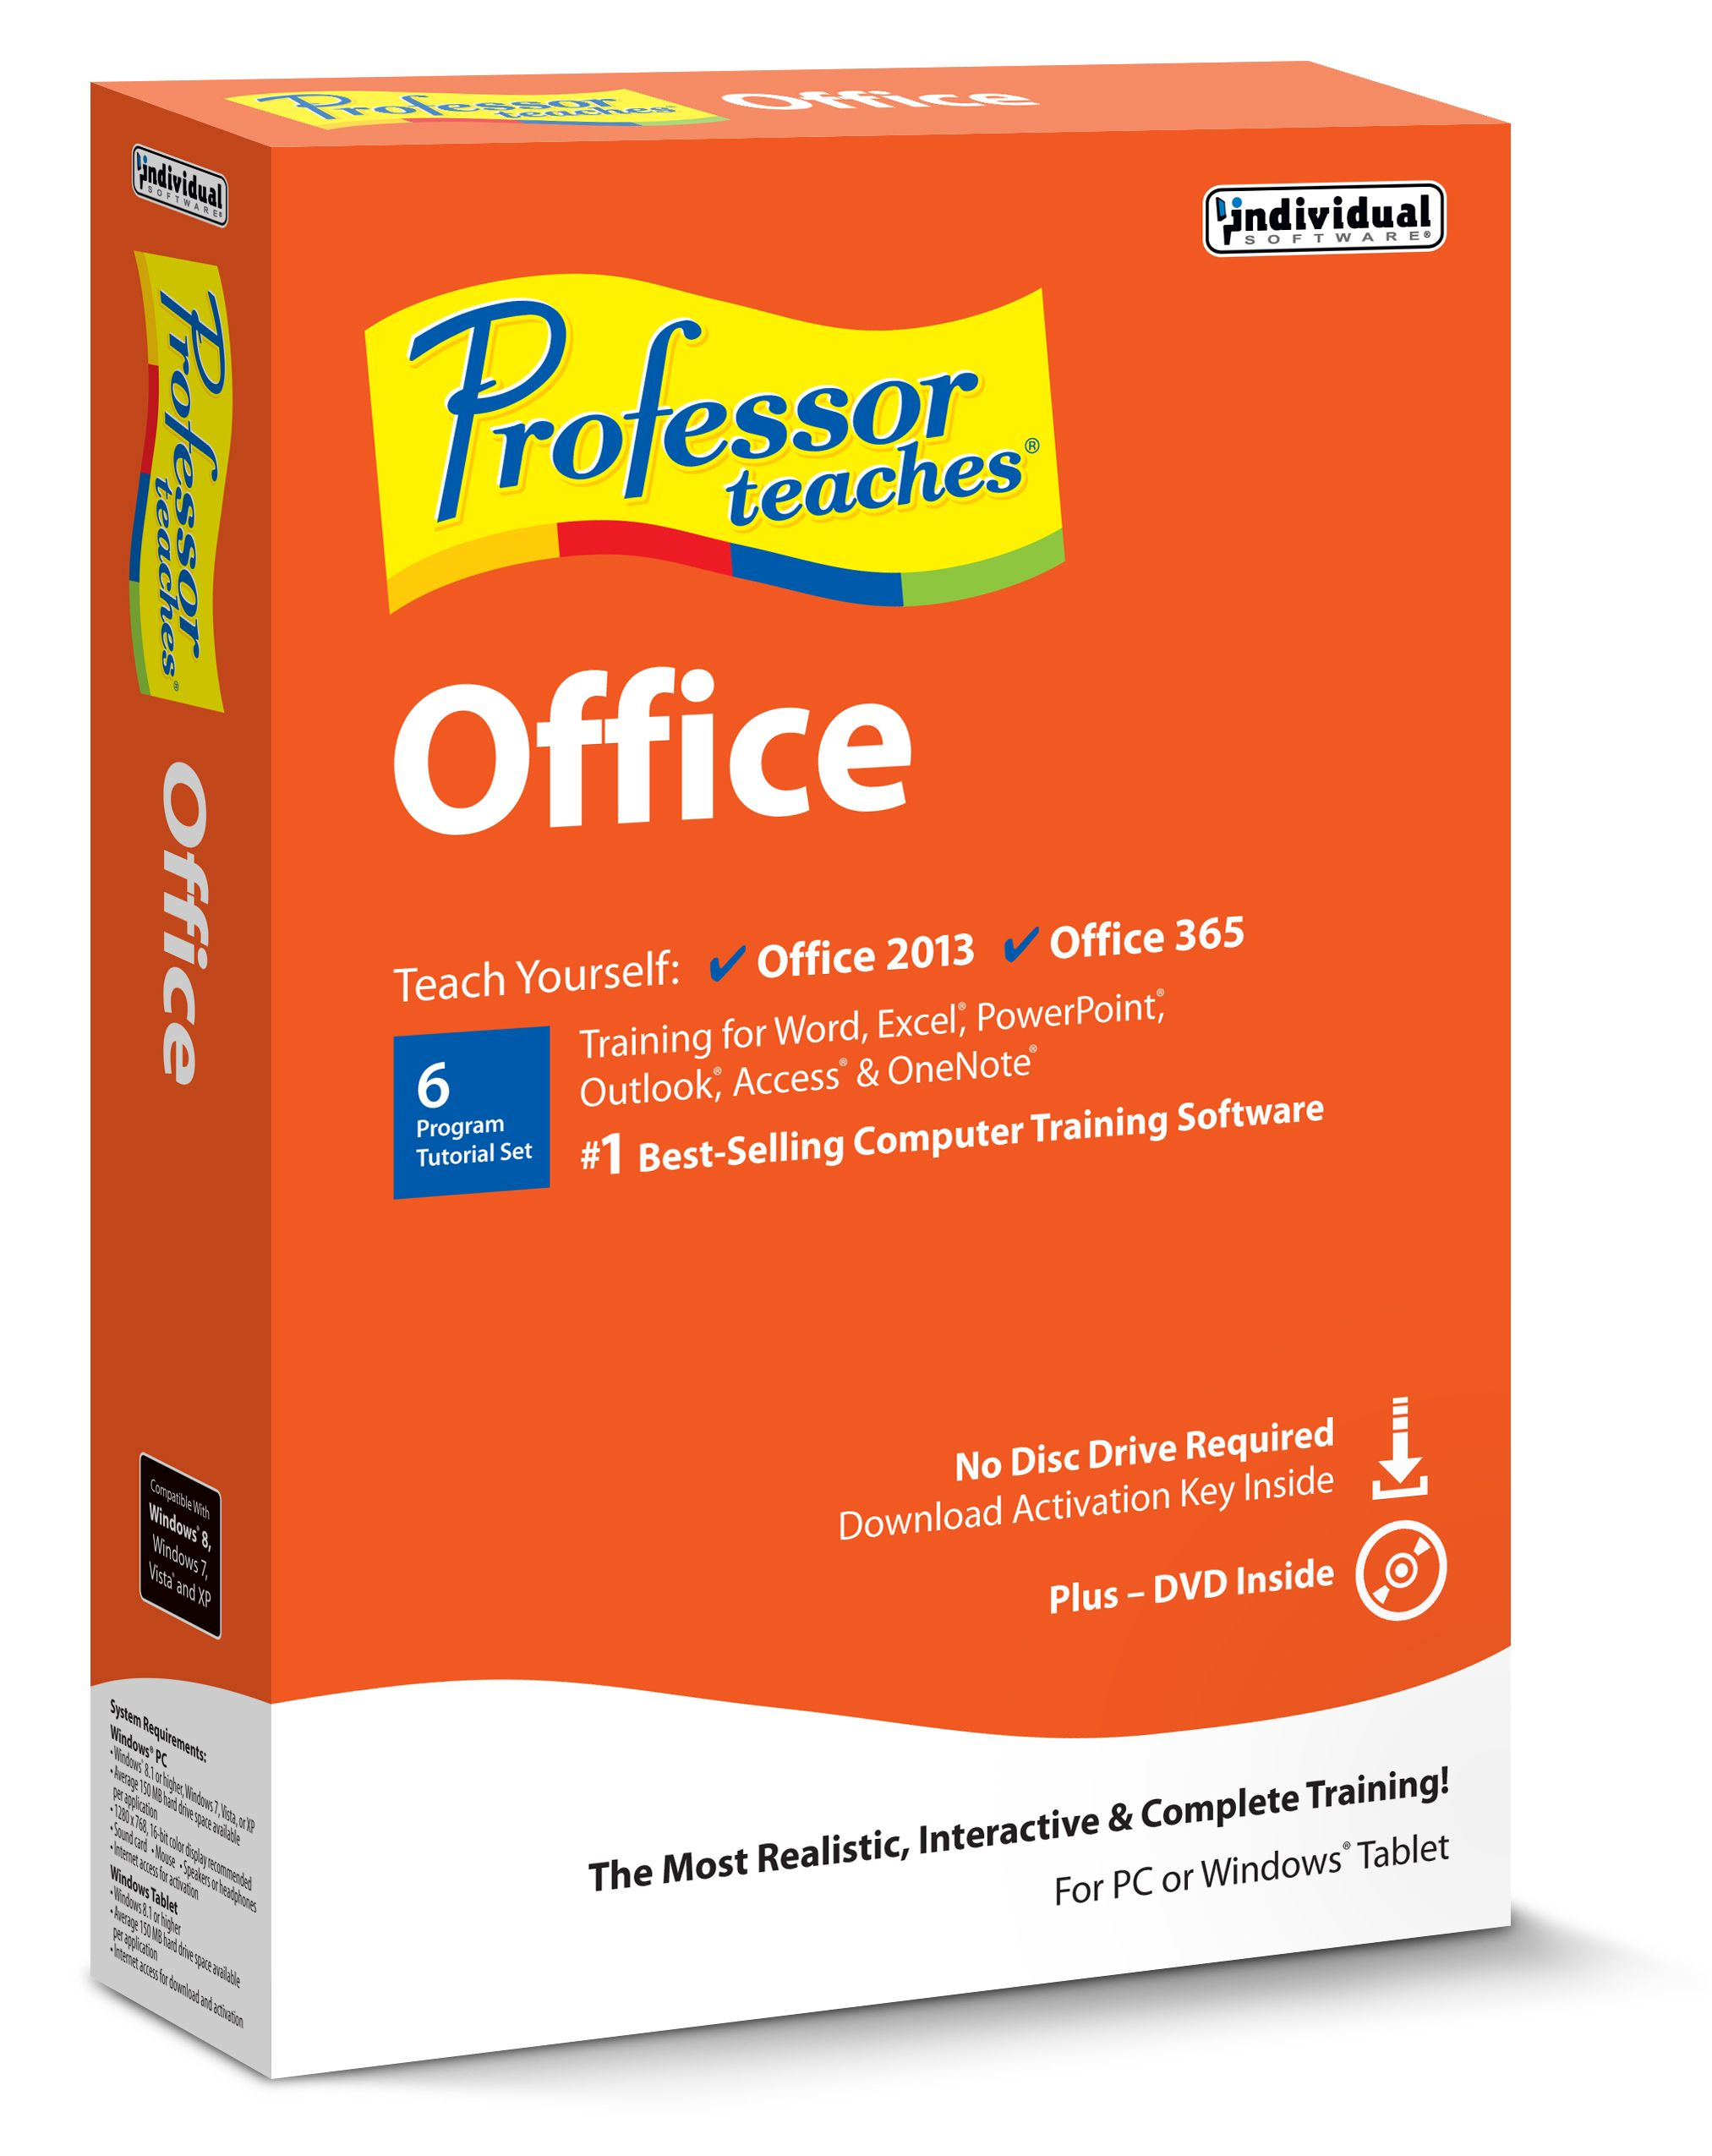 Learn microsoft office with professor teaches microsoft office learn microsoft office with professor teaches microsoft office 2013 and office 365 training all in baditri Images